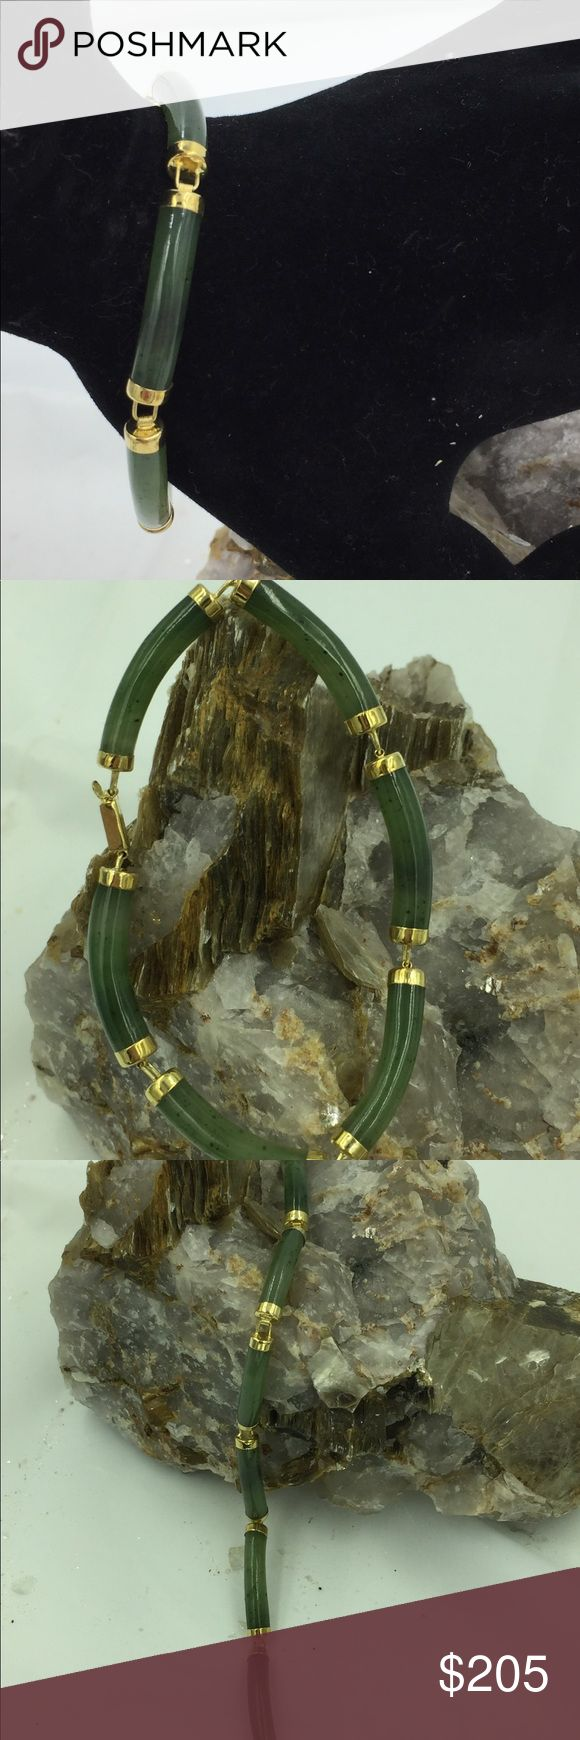 "14K Gold Jade w/ Impurities Tubular Bracelet 6.75"" Up for sale is a beautiful green Jade with impurities tubular bracelet set in 14K solid yellow gold. There is a Chinese character on the clasp. The ends of each bar has a solid gold cap for protection & stability. The impurities in each tubular jade add character & drama to this stunning piece.  Stamped: 14K GSJ Size: 6.75"" long x .20"" x .19"" thick Weight: 9.7g Jewelry Bracelets"